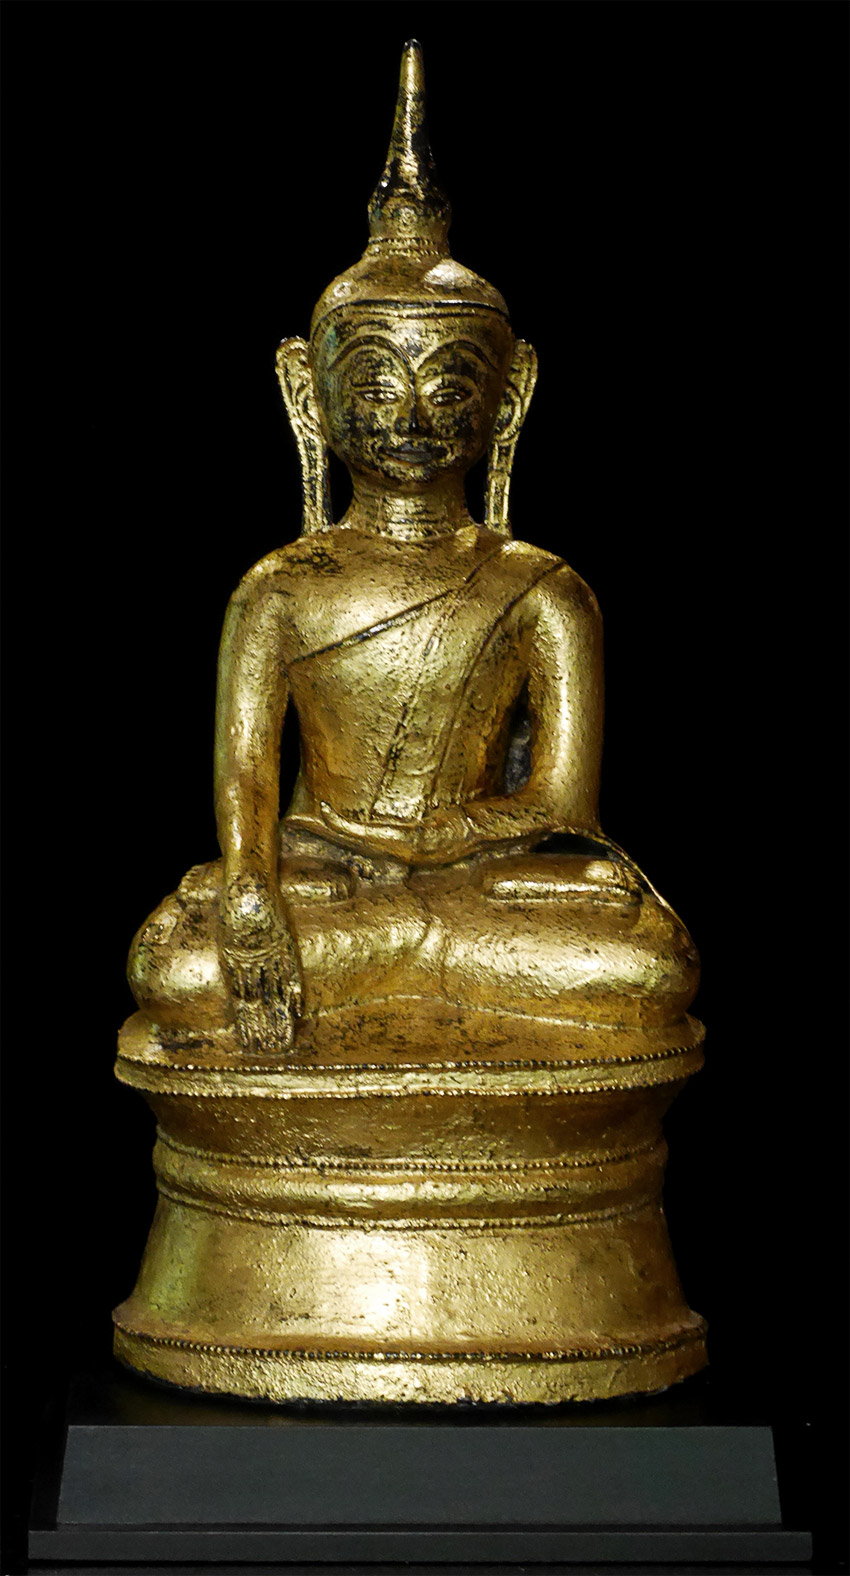 Antique Mon Buddha statue from Burma